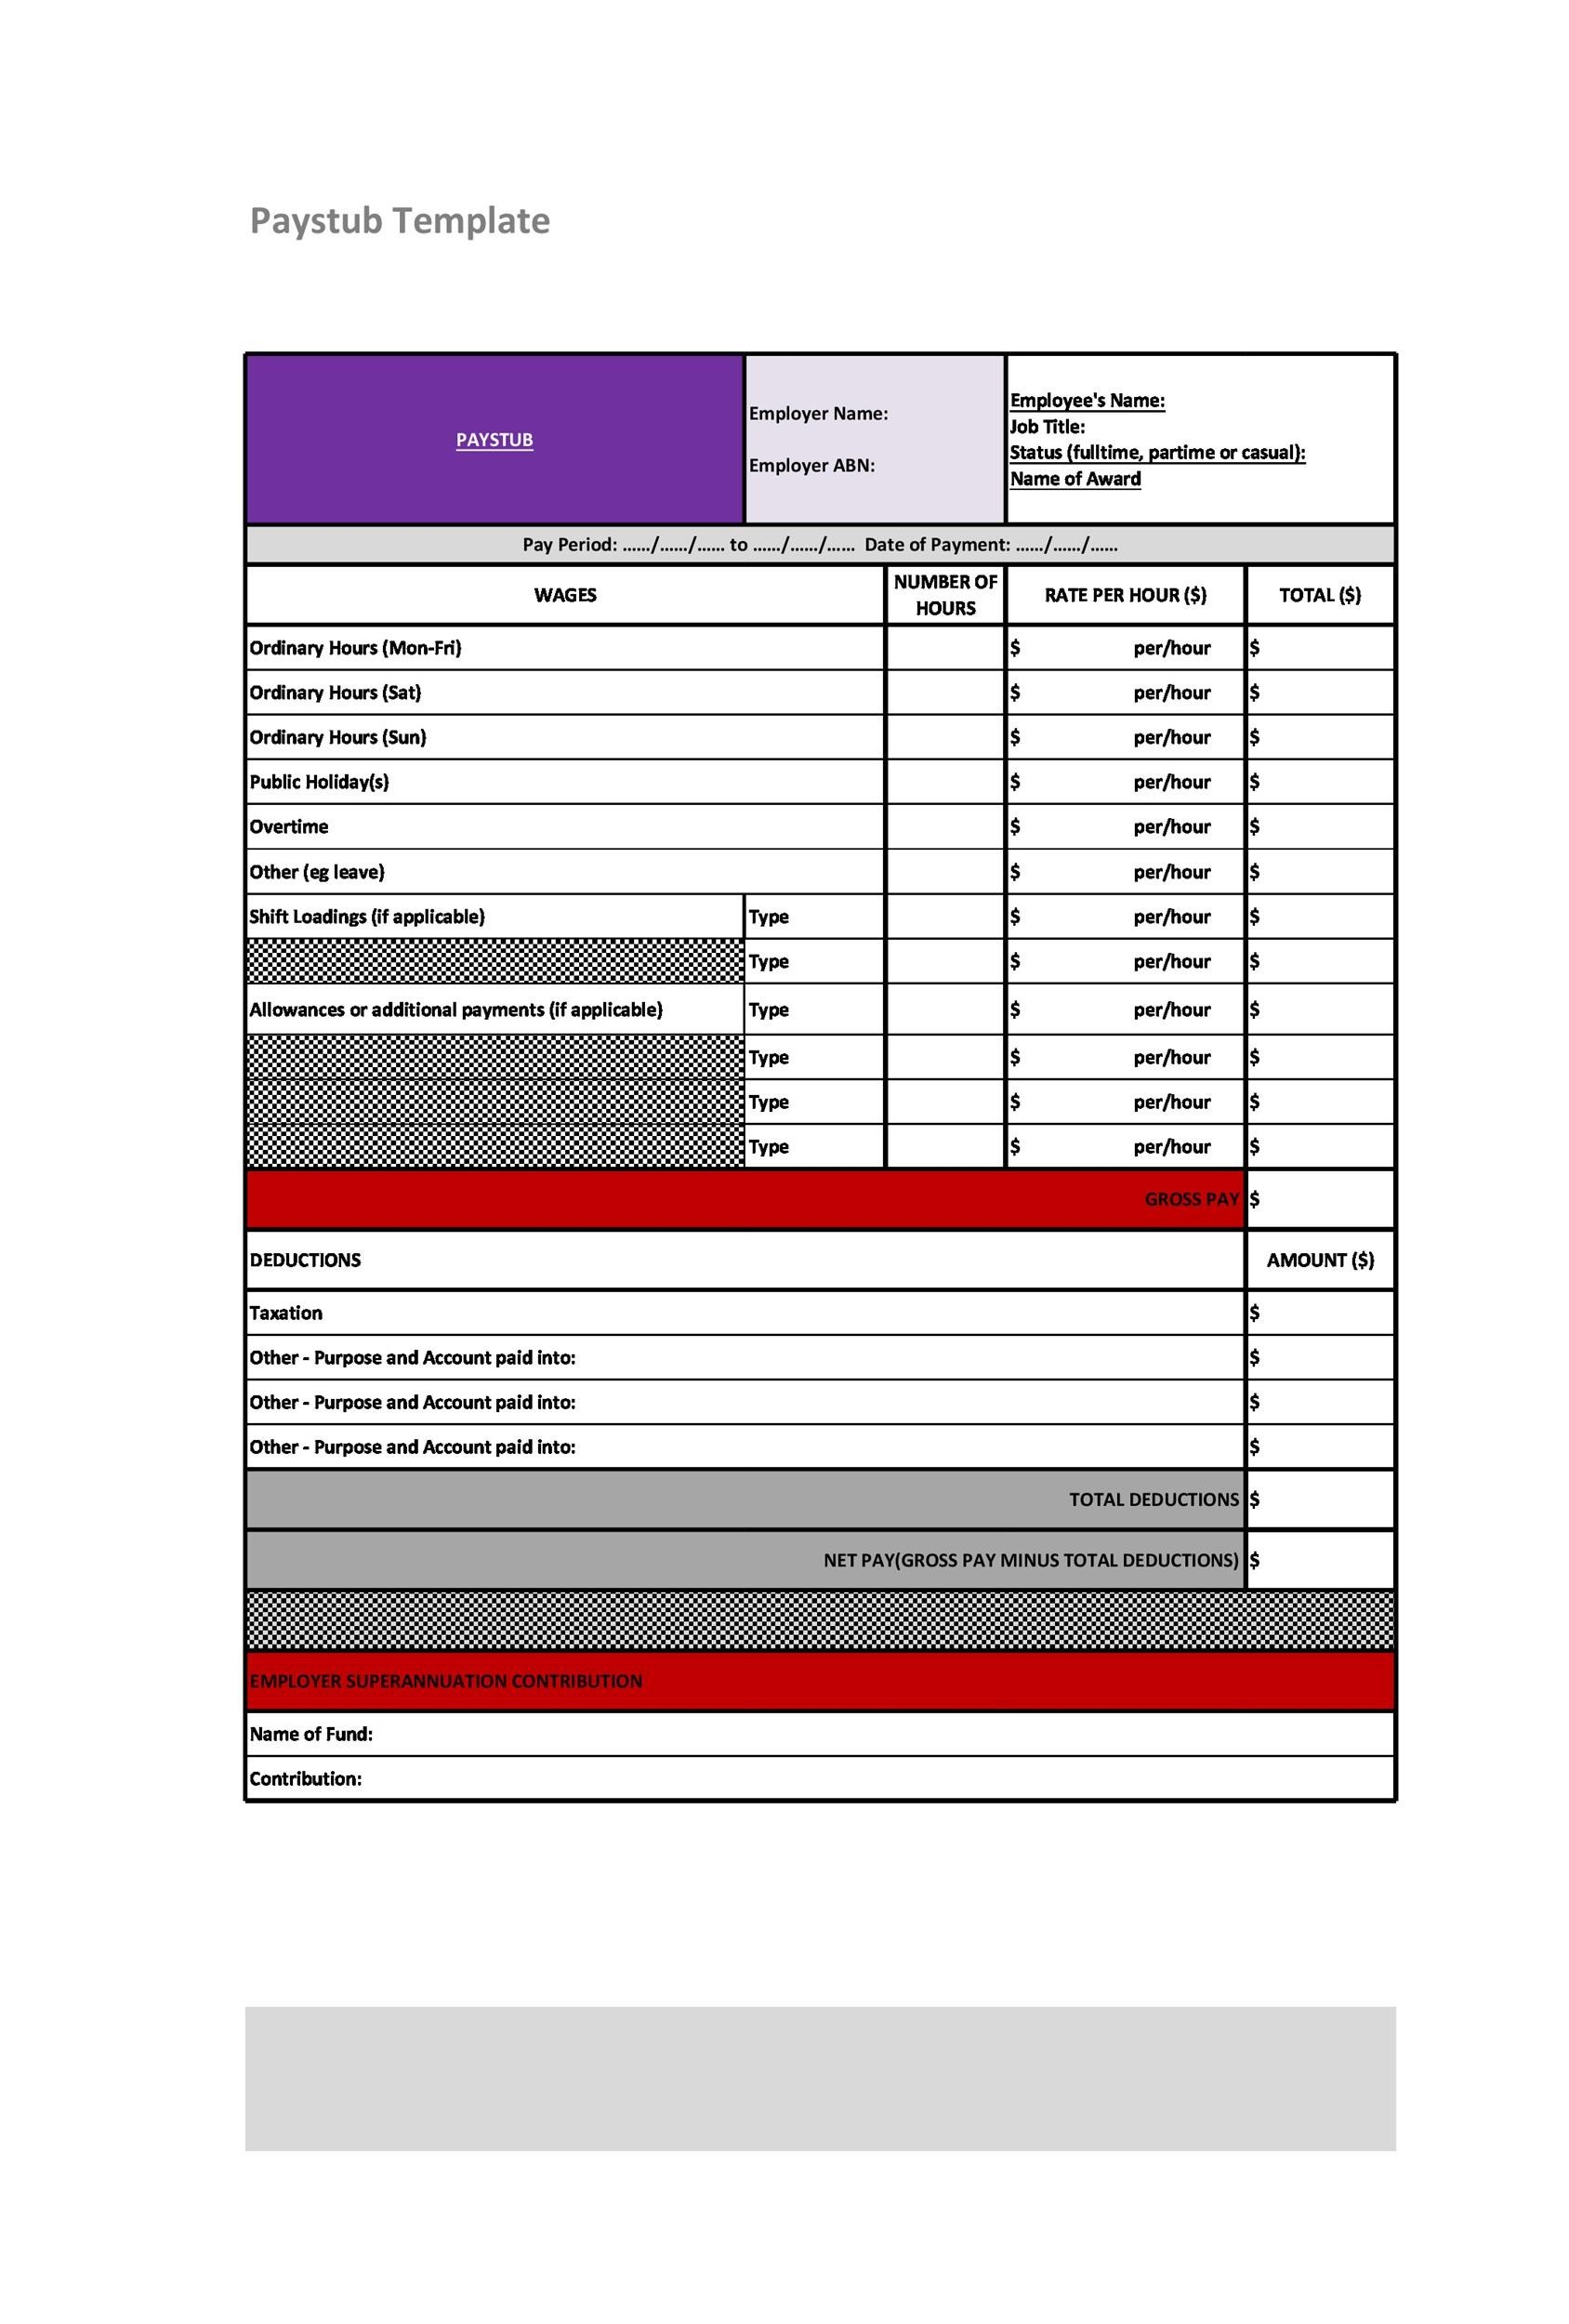 Paystub Template 7 pay stub template pdf authorizationletters org